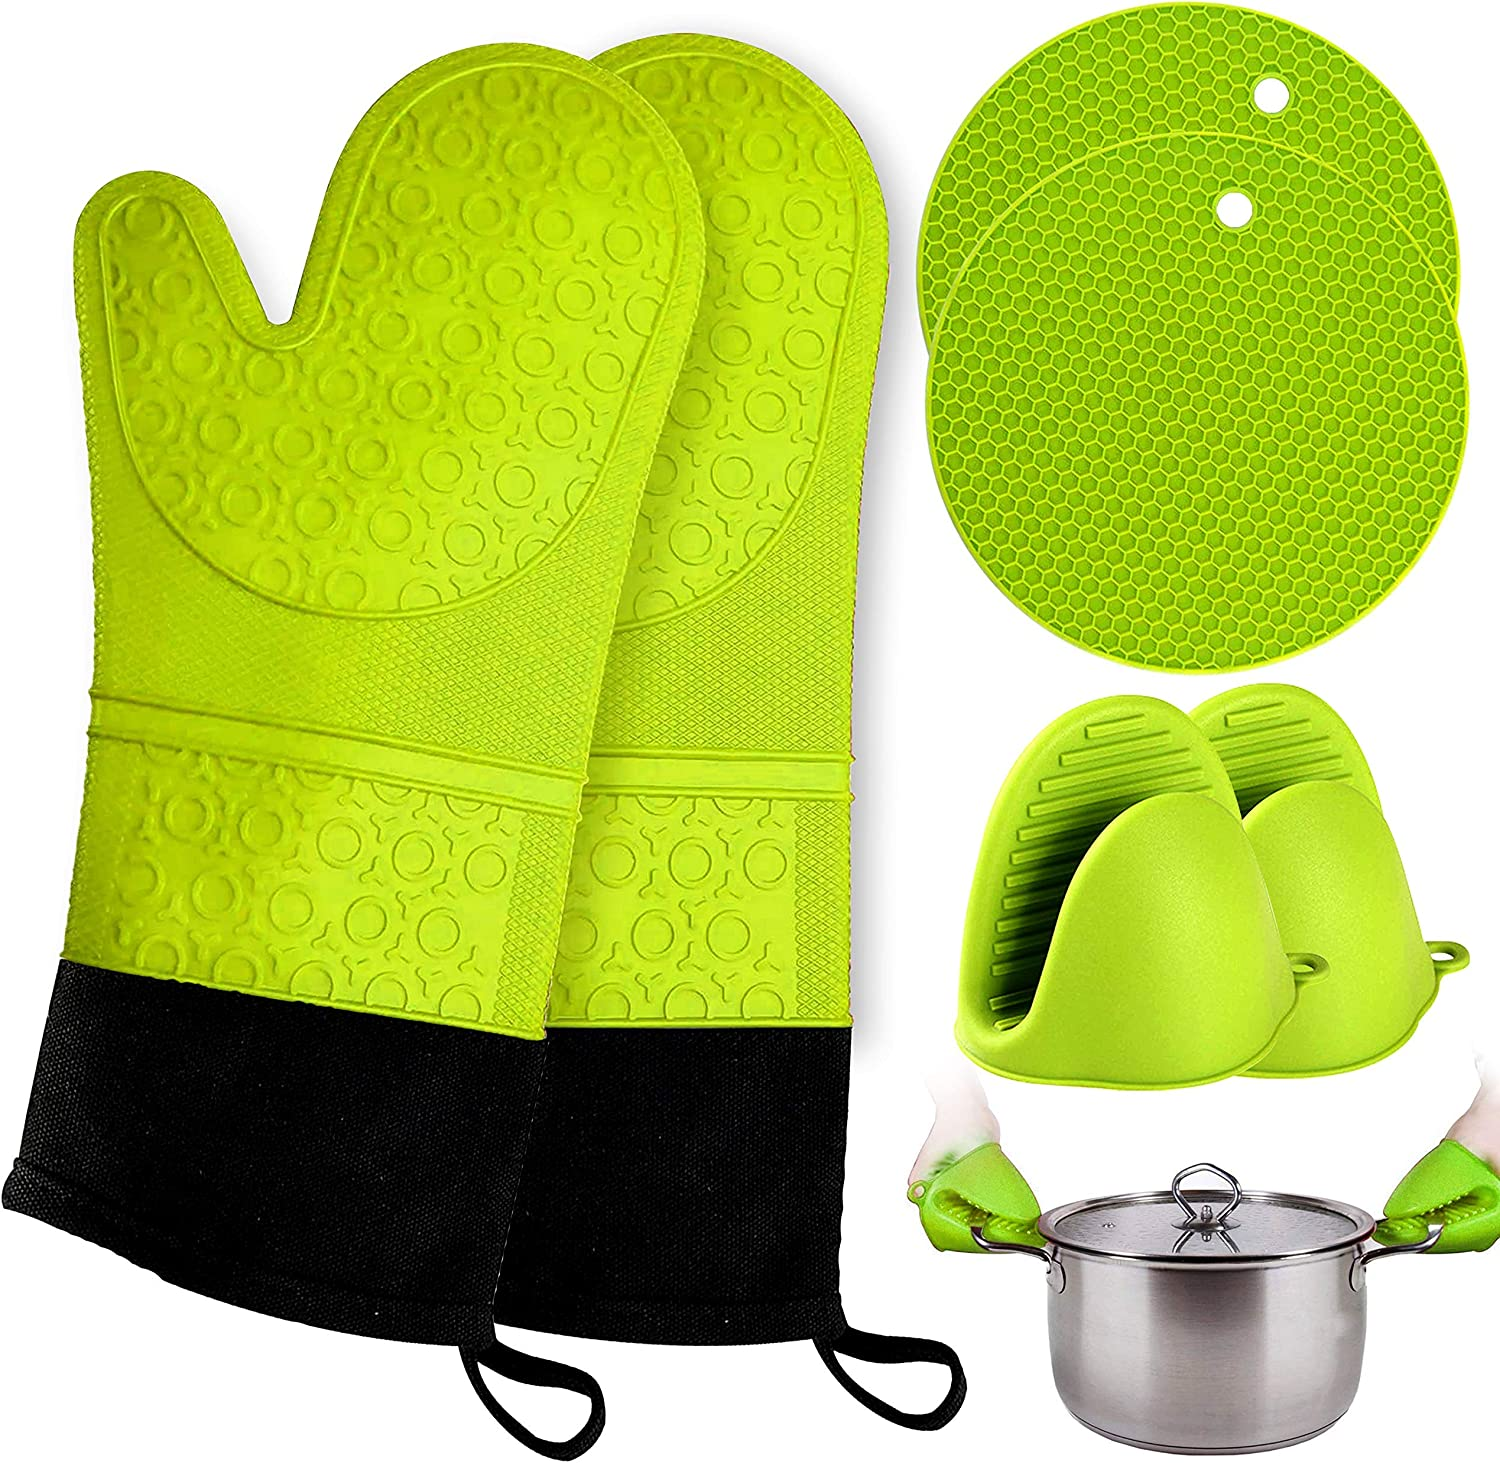 Oven Mitts and Pot Holder- Extra Long Silicone Oven Mitt Heat Resistant with 2 trivets & Mini Pinch Oven Mitts-Food Safe Baking Gloves for Cooking in Kitchen with Soft Inner Lining: Kitchen & Dining